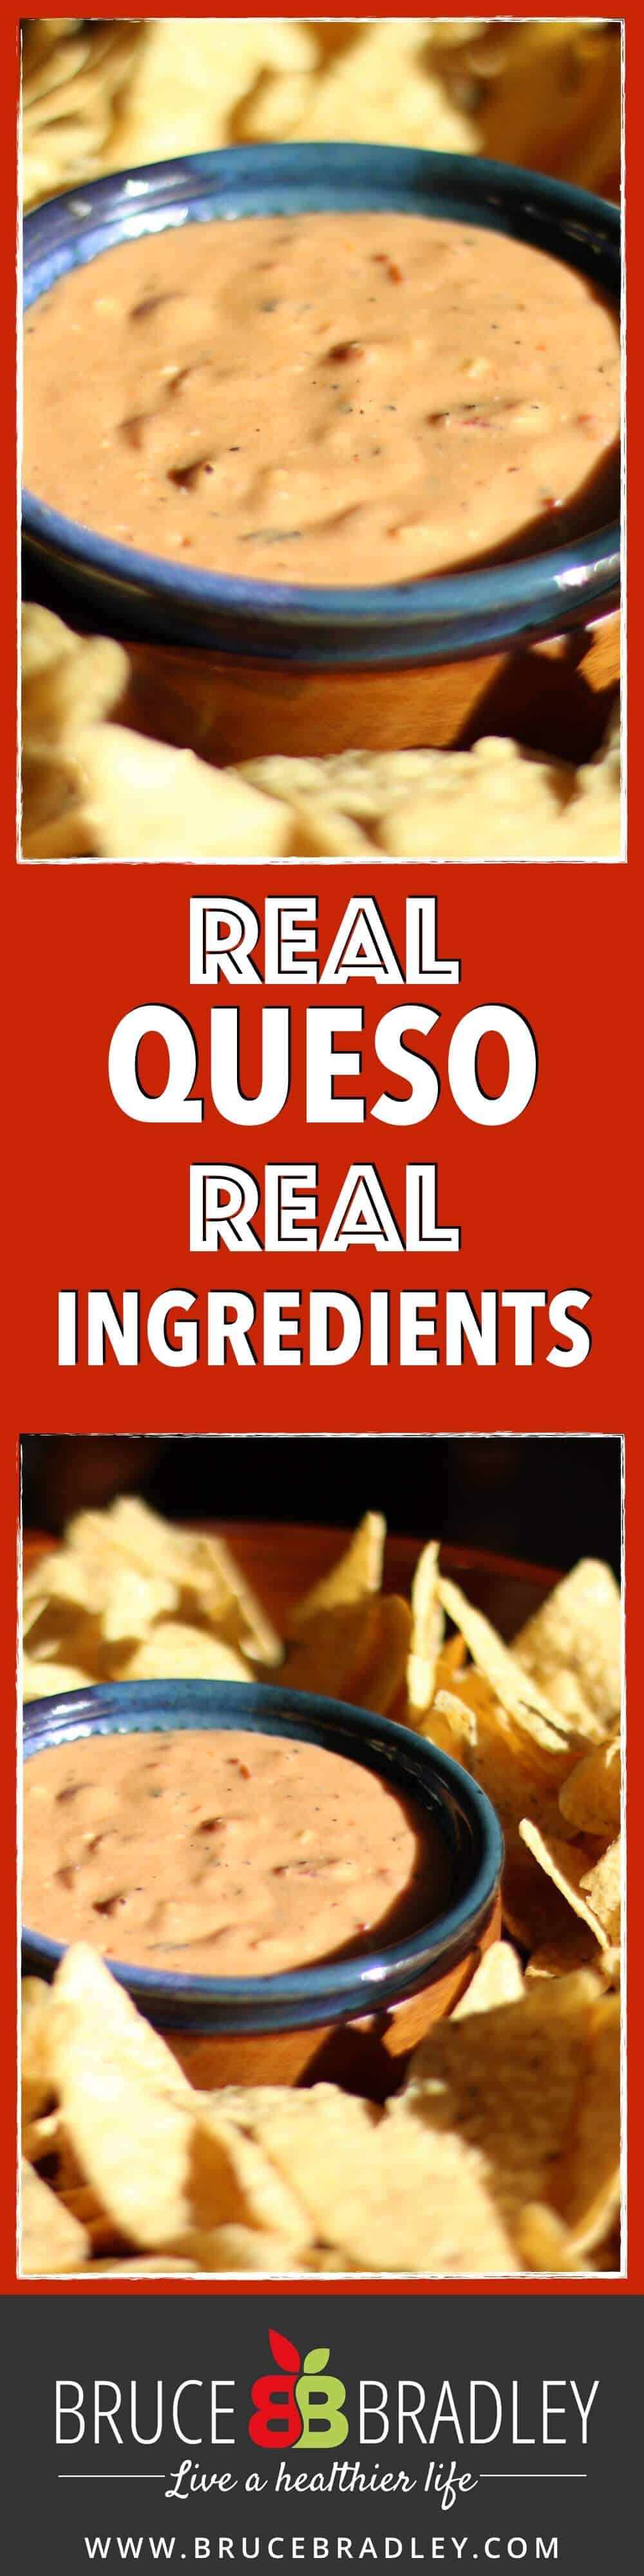 Bruce Bradley's homemade queso uses only REAL ingredients